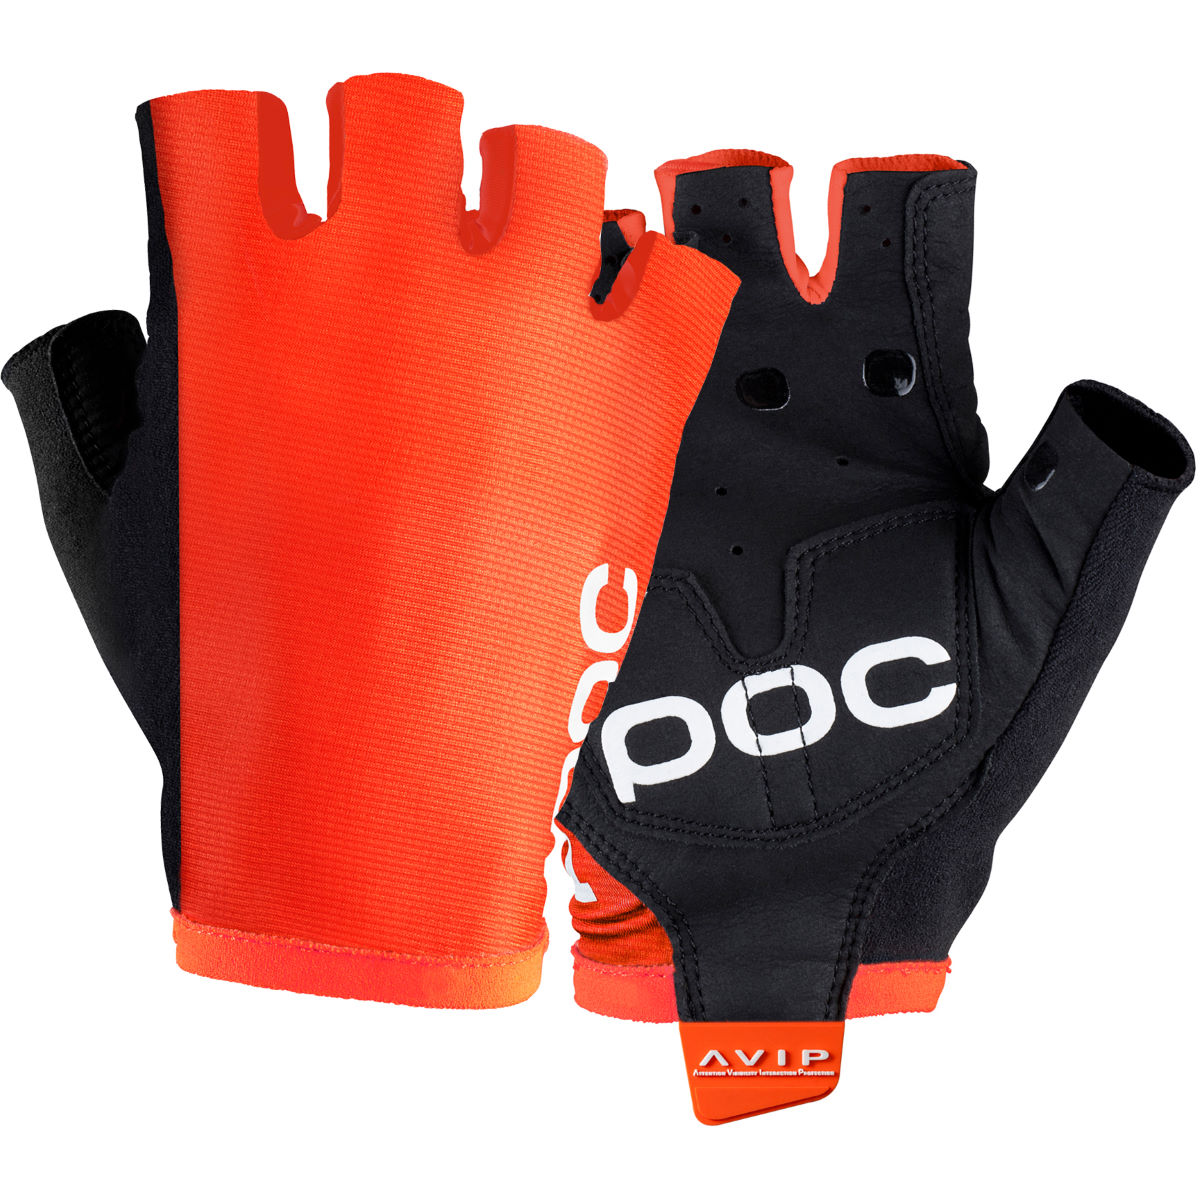 Gants courts POC Essential AVIP - XS Zink Orange Gants courts